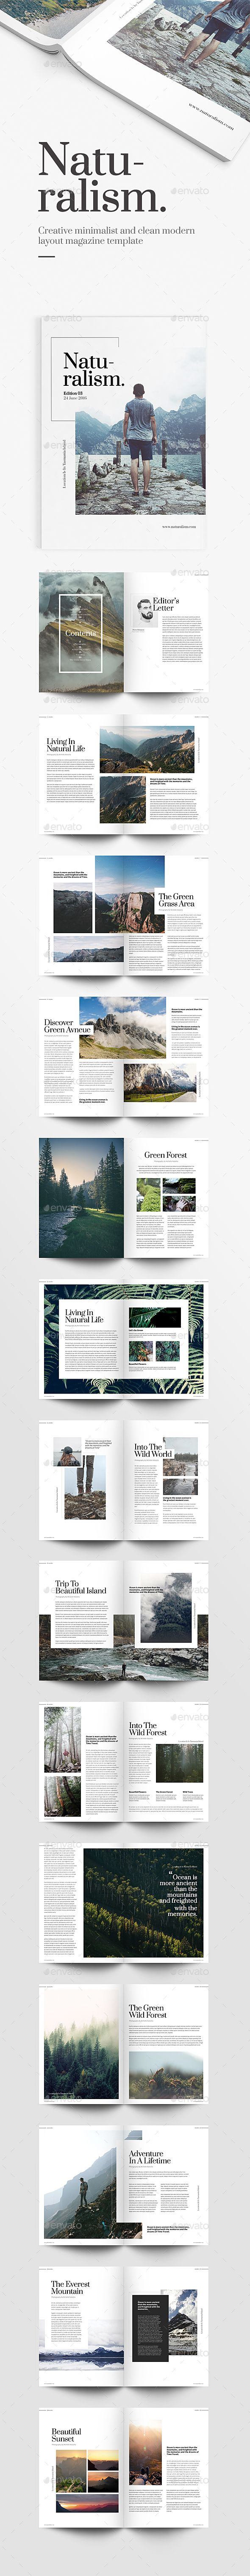 Naturalism Magazine Template InDesign INDD. Download here: https://graphicriver.net/item/naturalism-magazine-/17277074?ref=ksioks